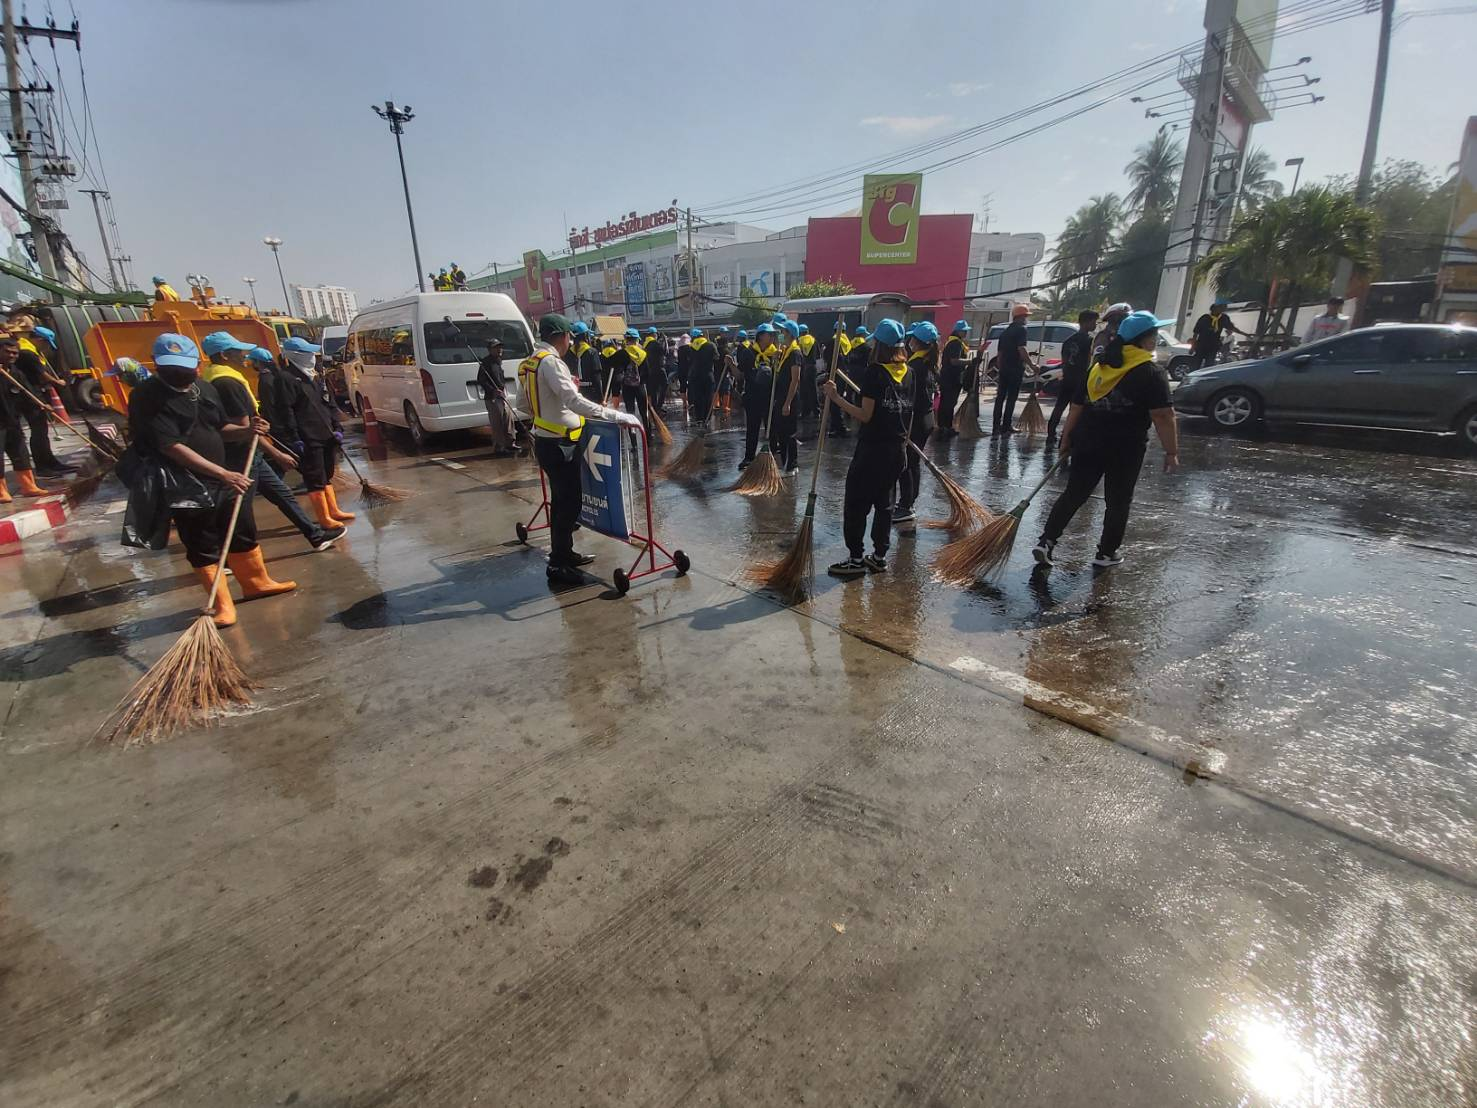 Volunteers clean the entrance to Terminal 21 shopping mall in Muang district of Nakhon Ratchasima province on Wednesday morning. (Photo by Prasit Tangprasert)